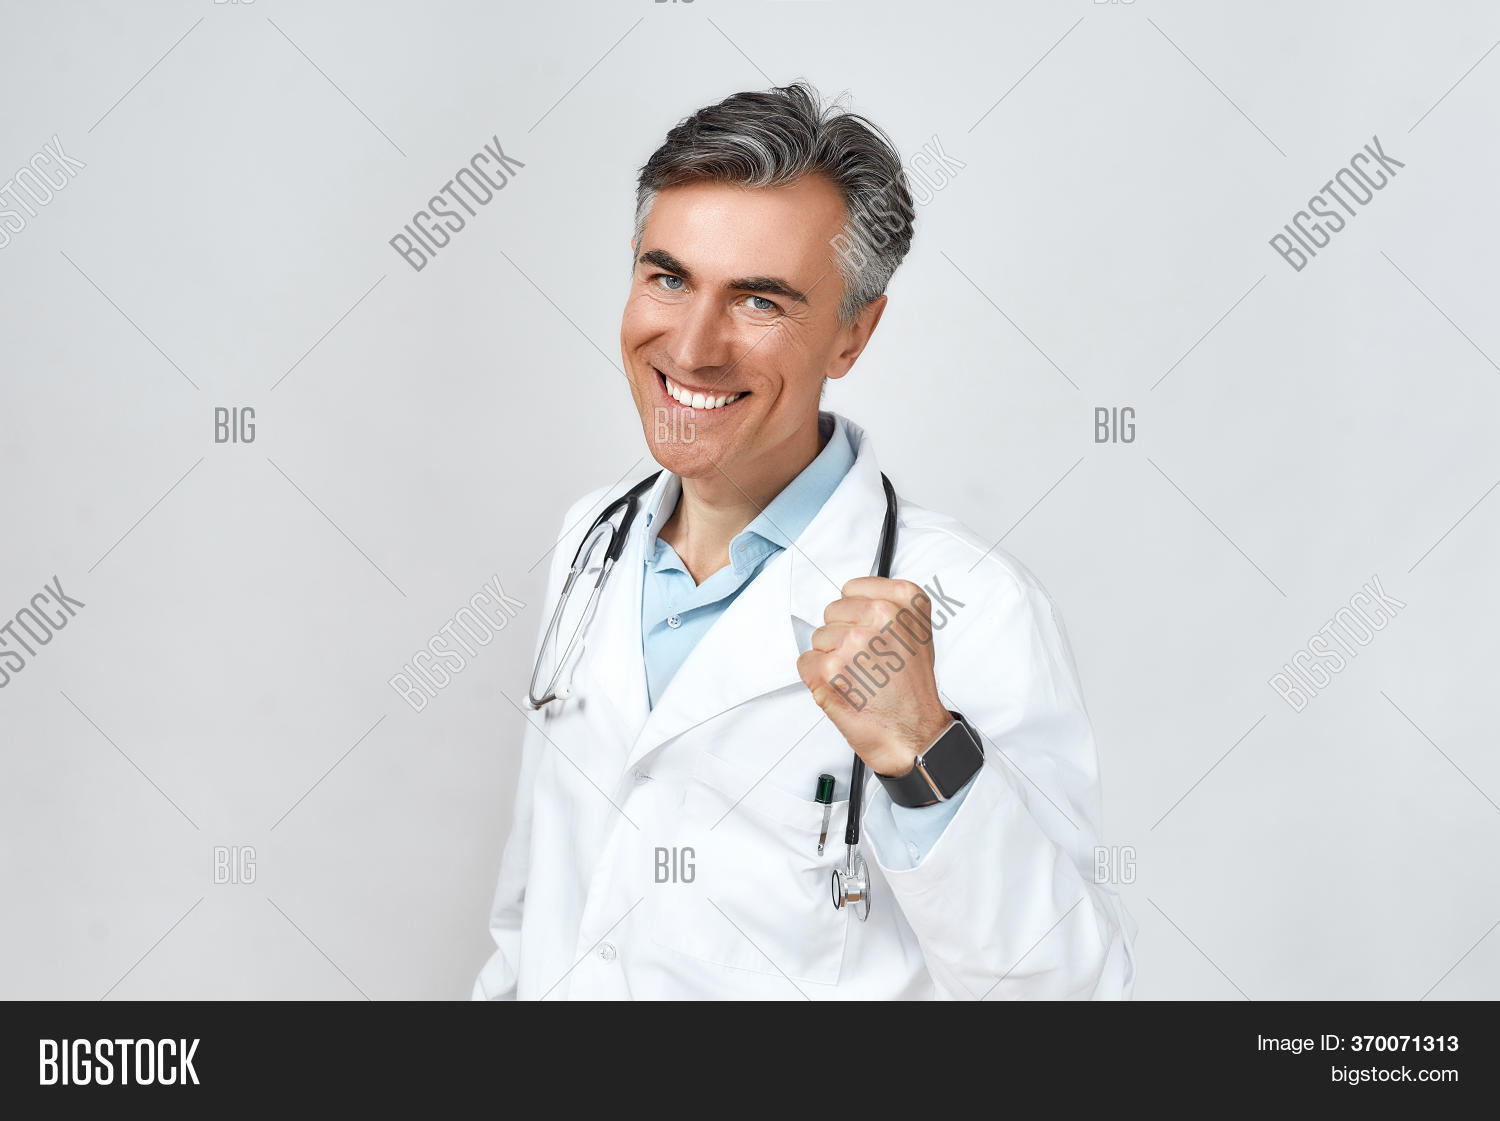 Excited Smiling Male Image Photo Free Trial Bigstock